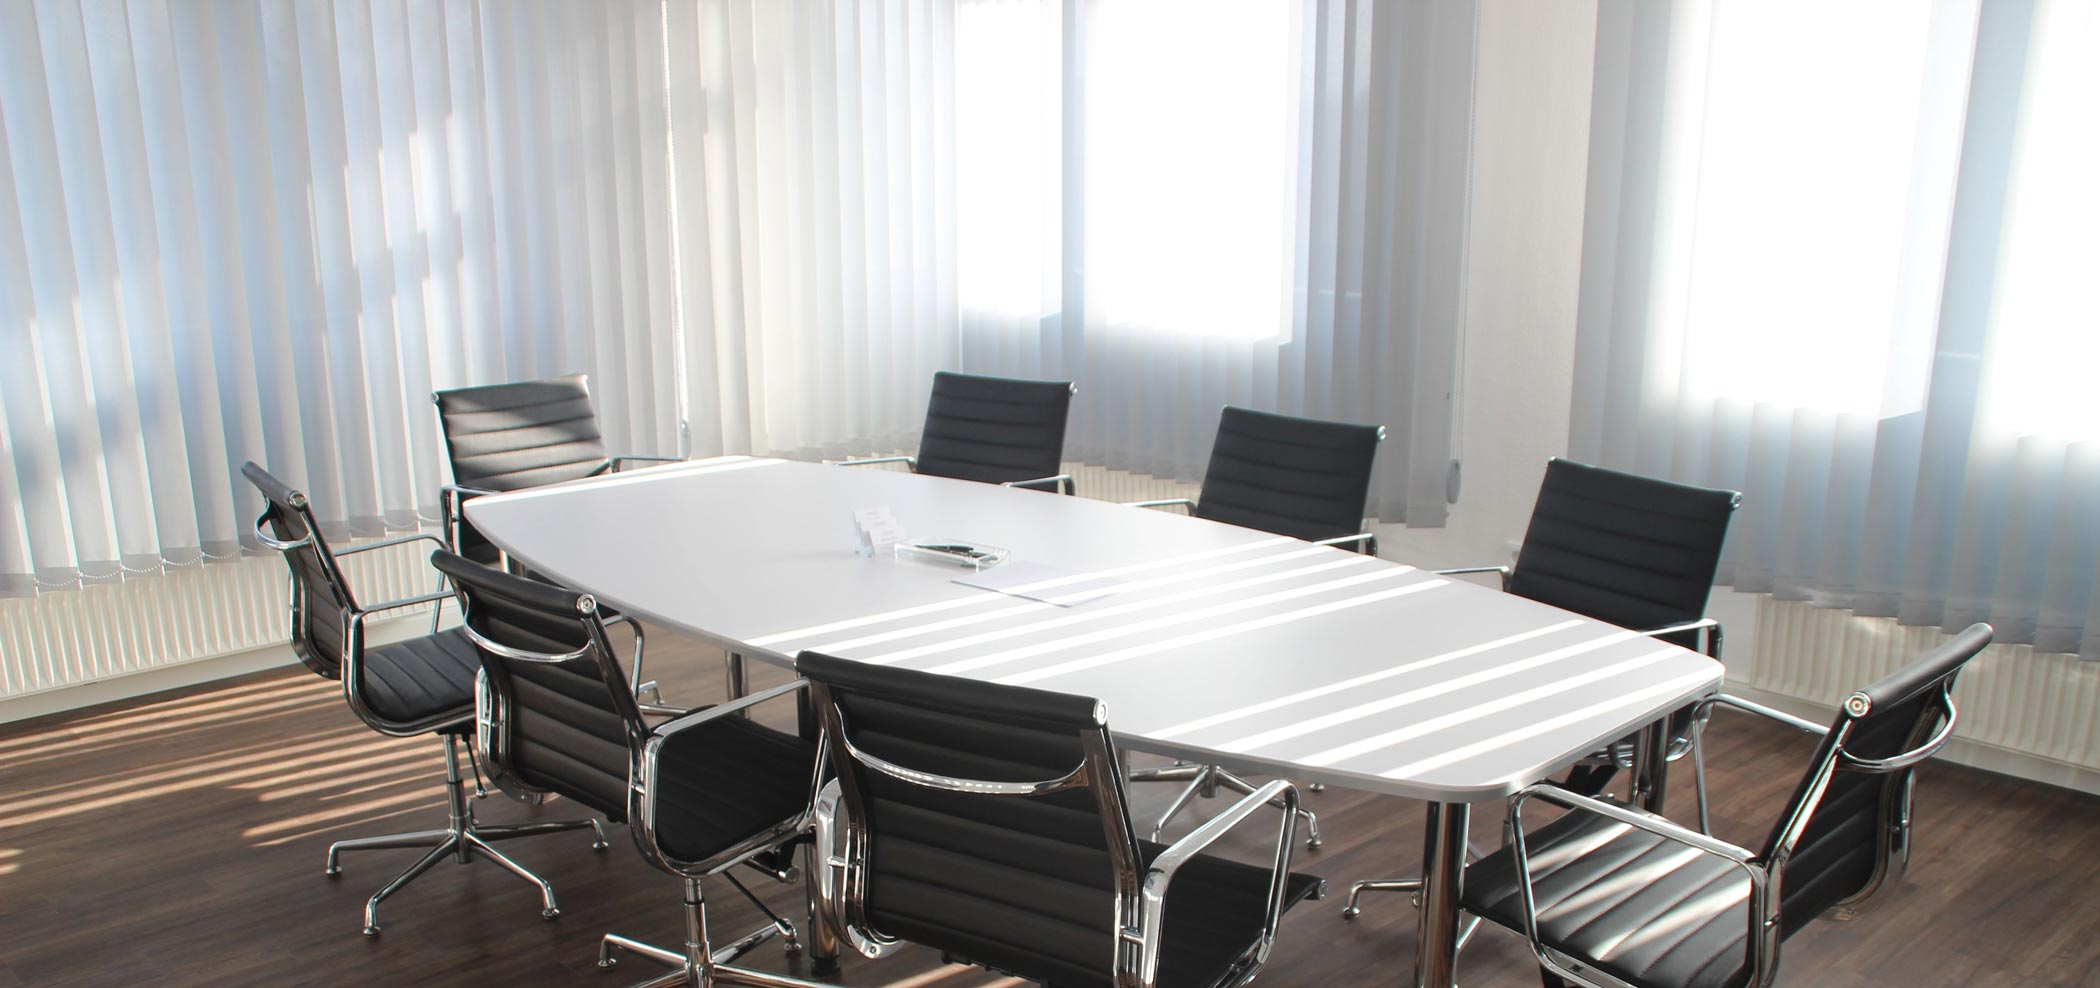 Light shine through the white vertical shades to modern simple office conference room